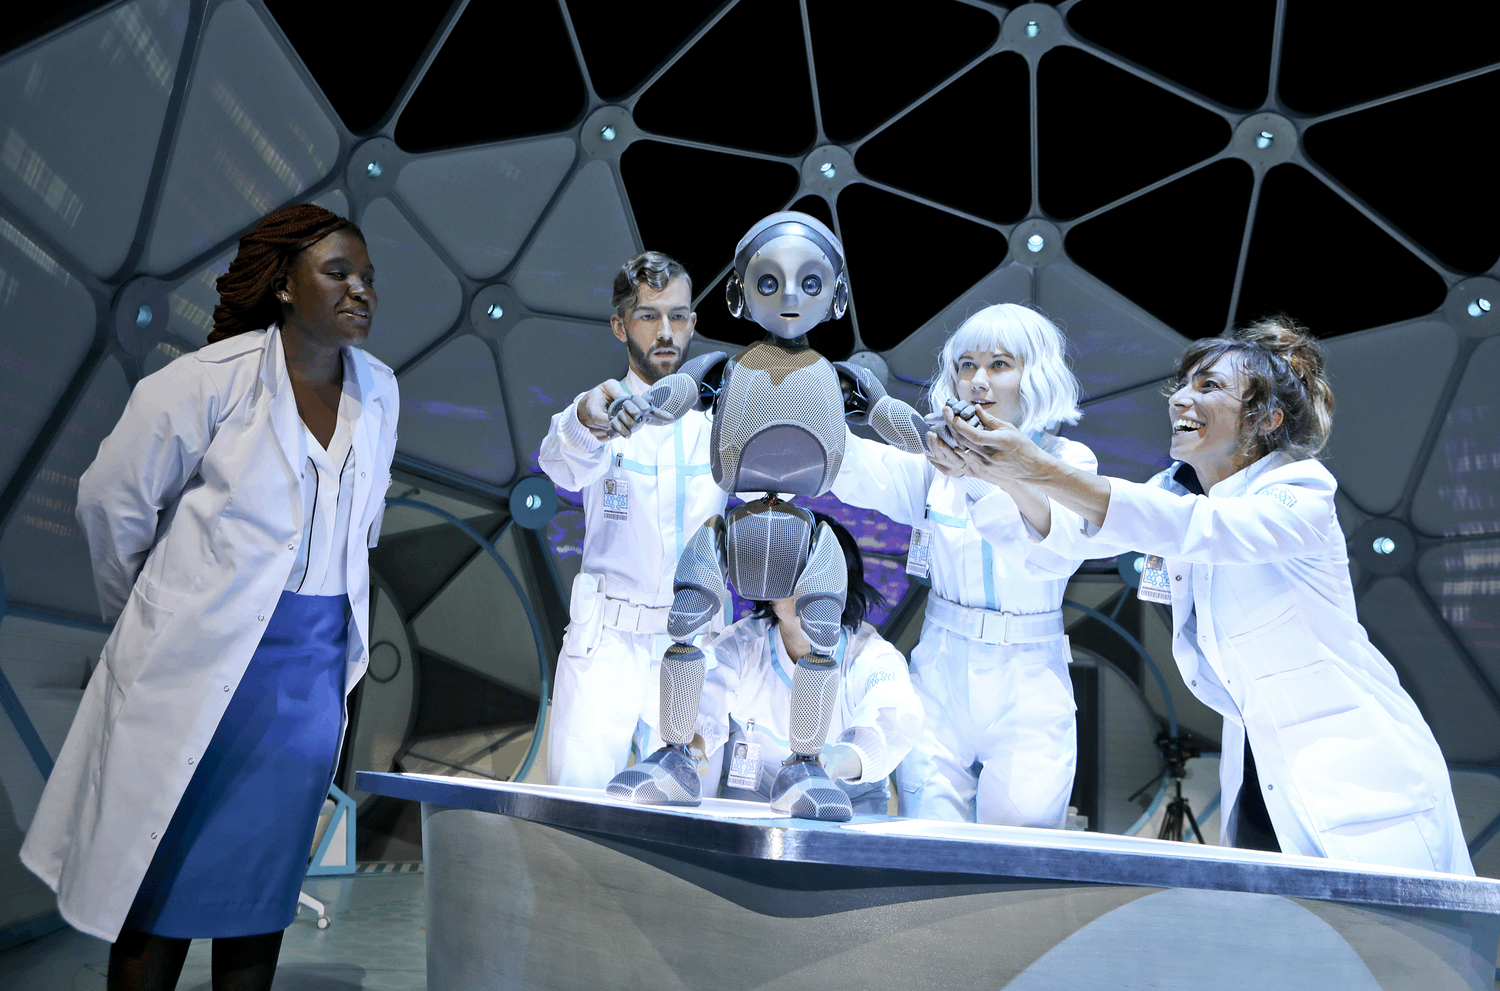 Robot Boy held by 3 technicians tentatively takes his first steps inside a sci fi laboratory